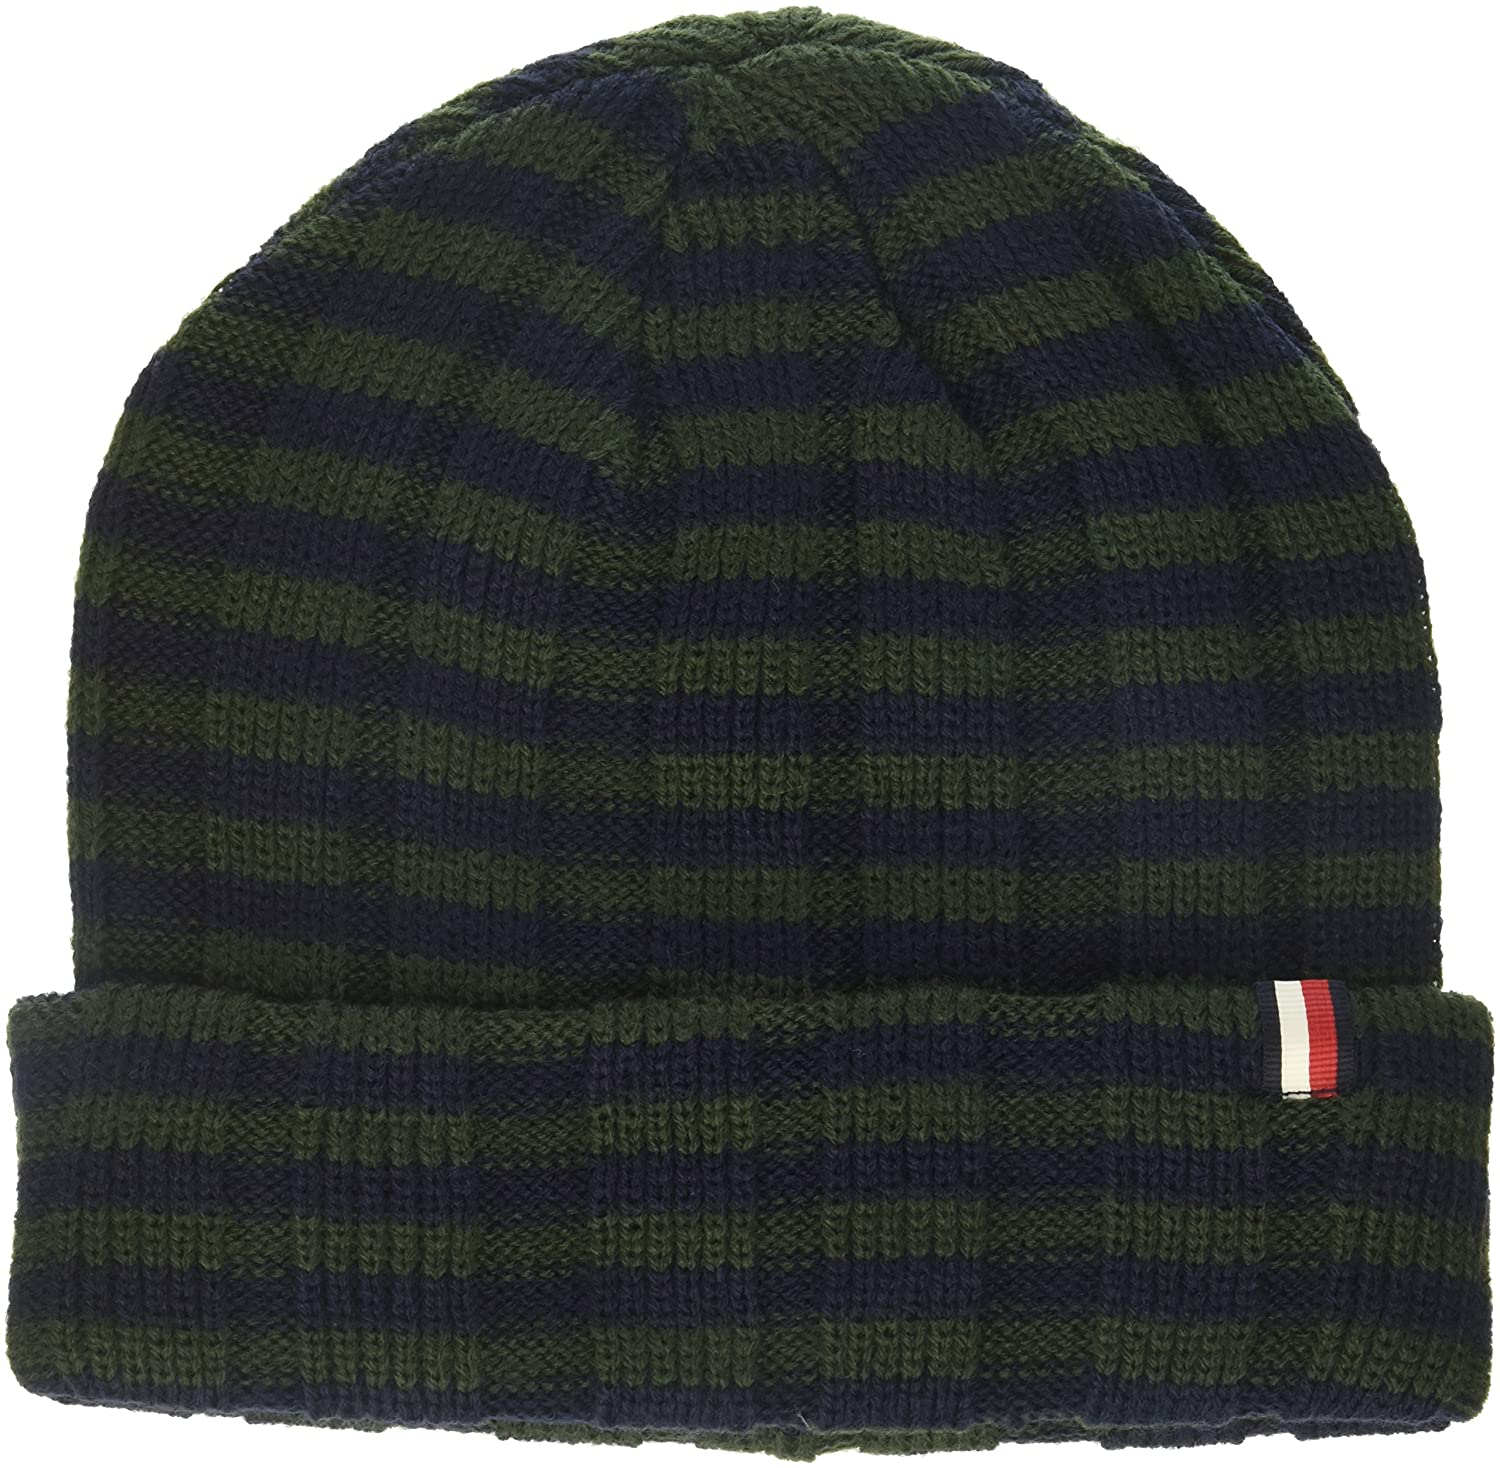 Tommy Hilfiger Men s Cold Weather Beanie b11f606591c